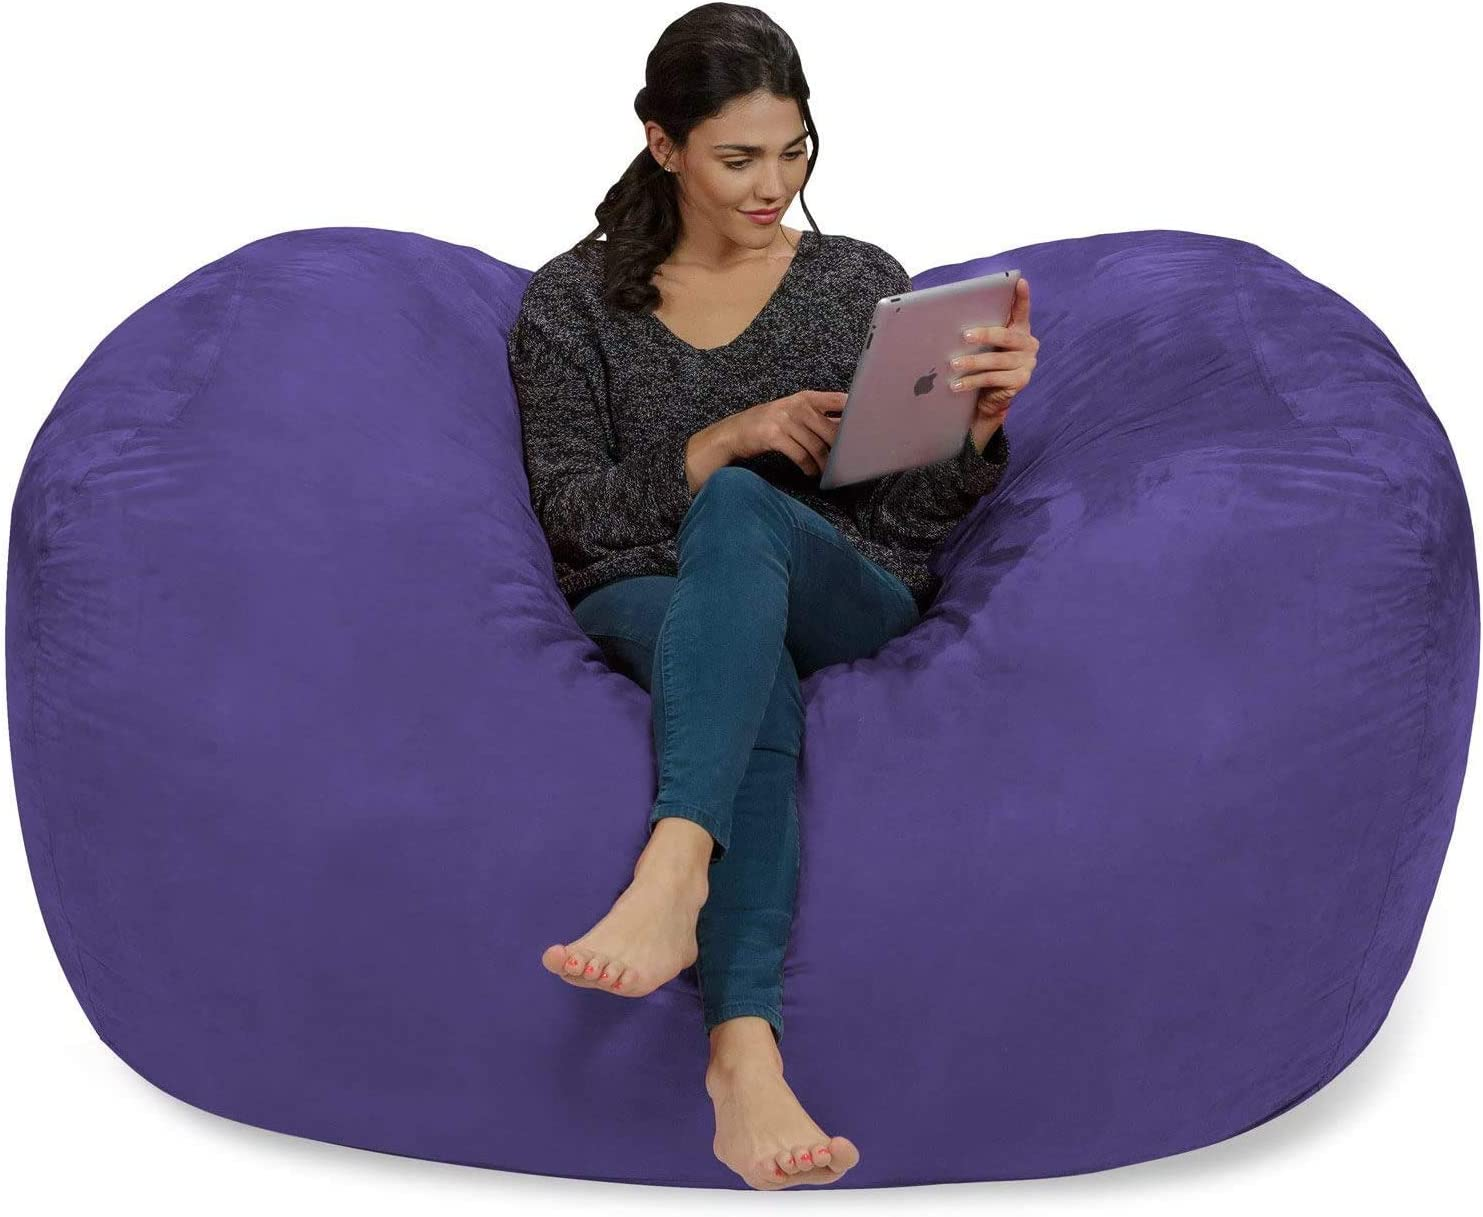 Ink Craft 6 Foot Bean Bag Chair Cover Only, Large Washable Furniture Bean Bag Replacement Cover Without Bean Filling (Purple)